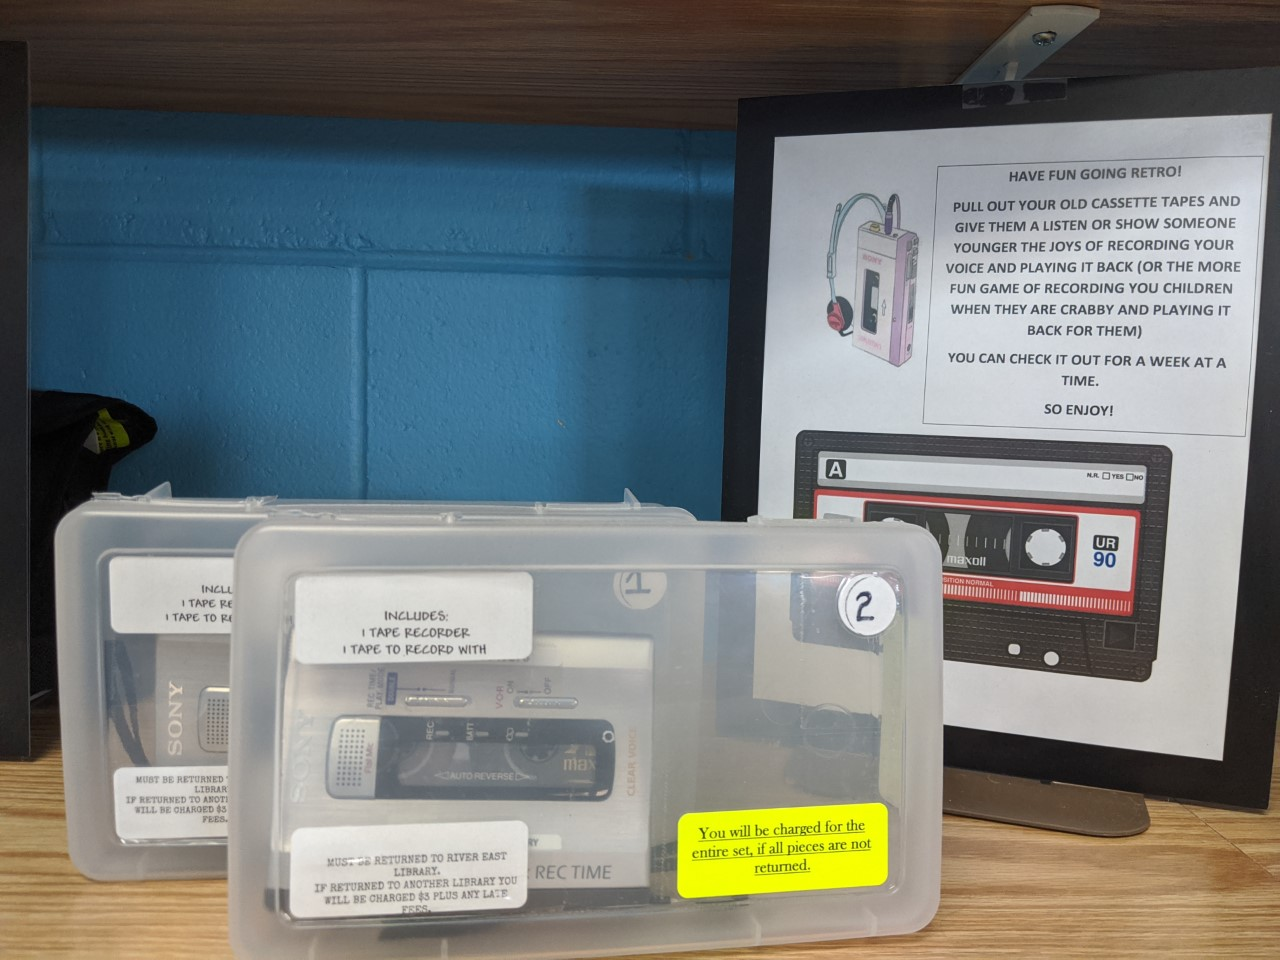 Image of a Cassette Tape Recorder